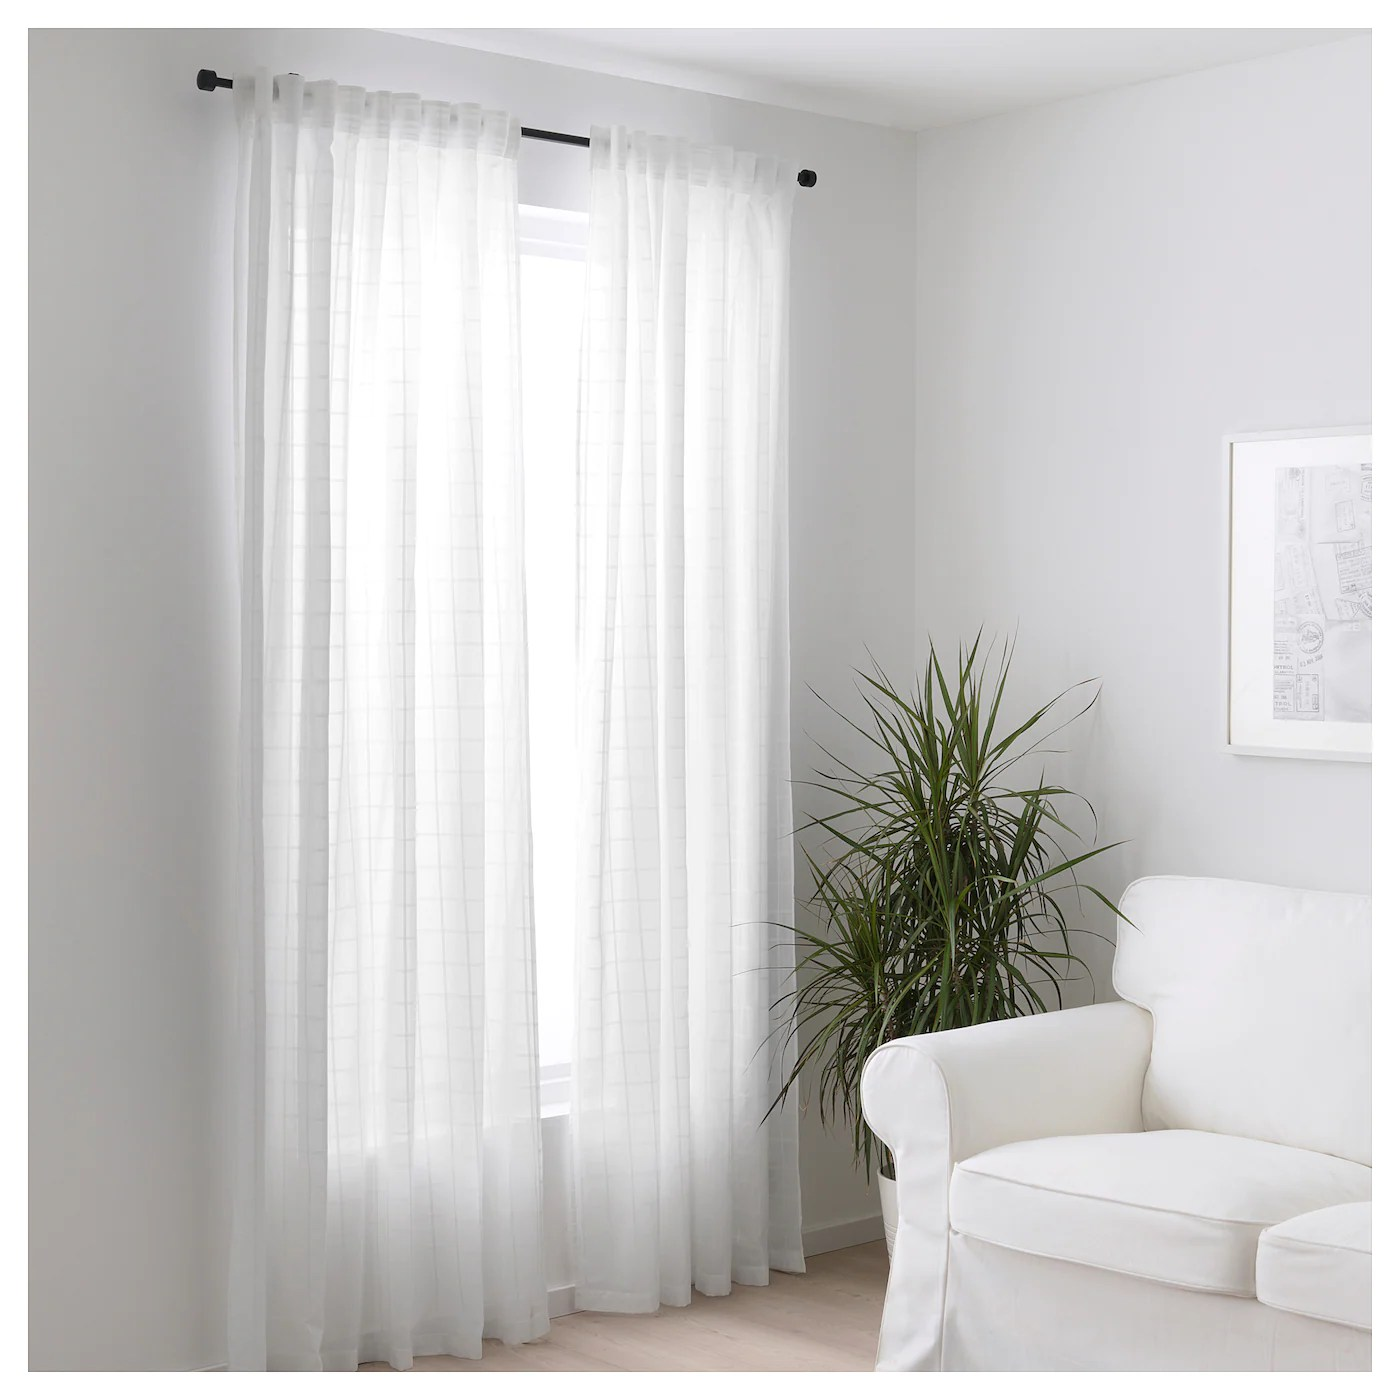 BERGITTE Sheer curtains 1 pair White 140 x 250 cm  IKEA